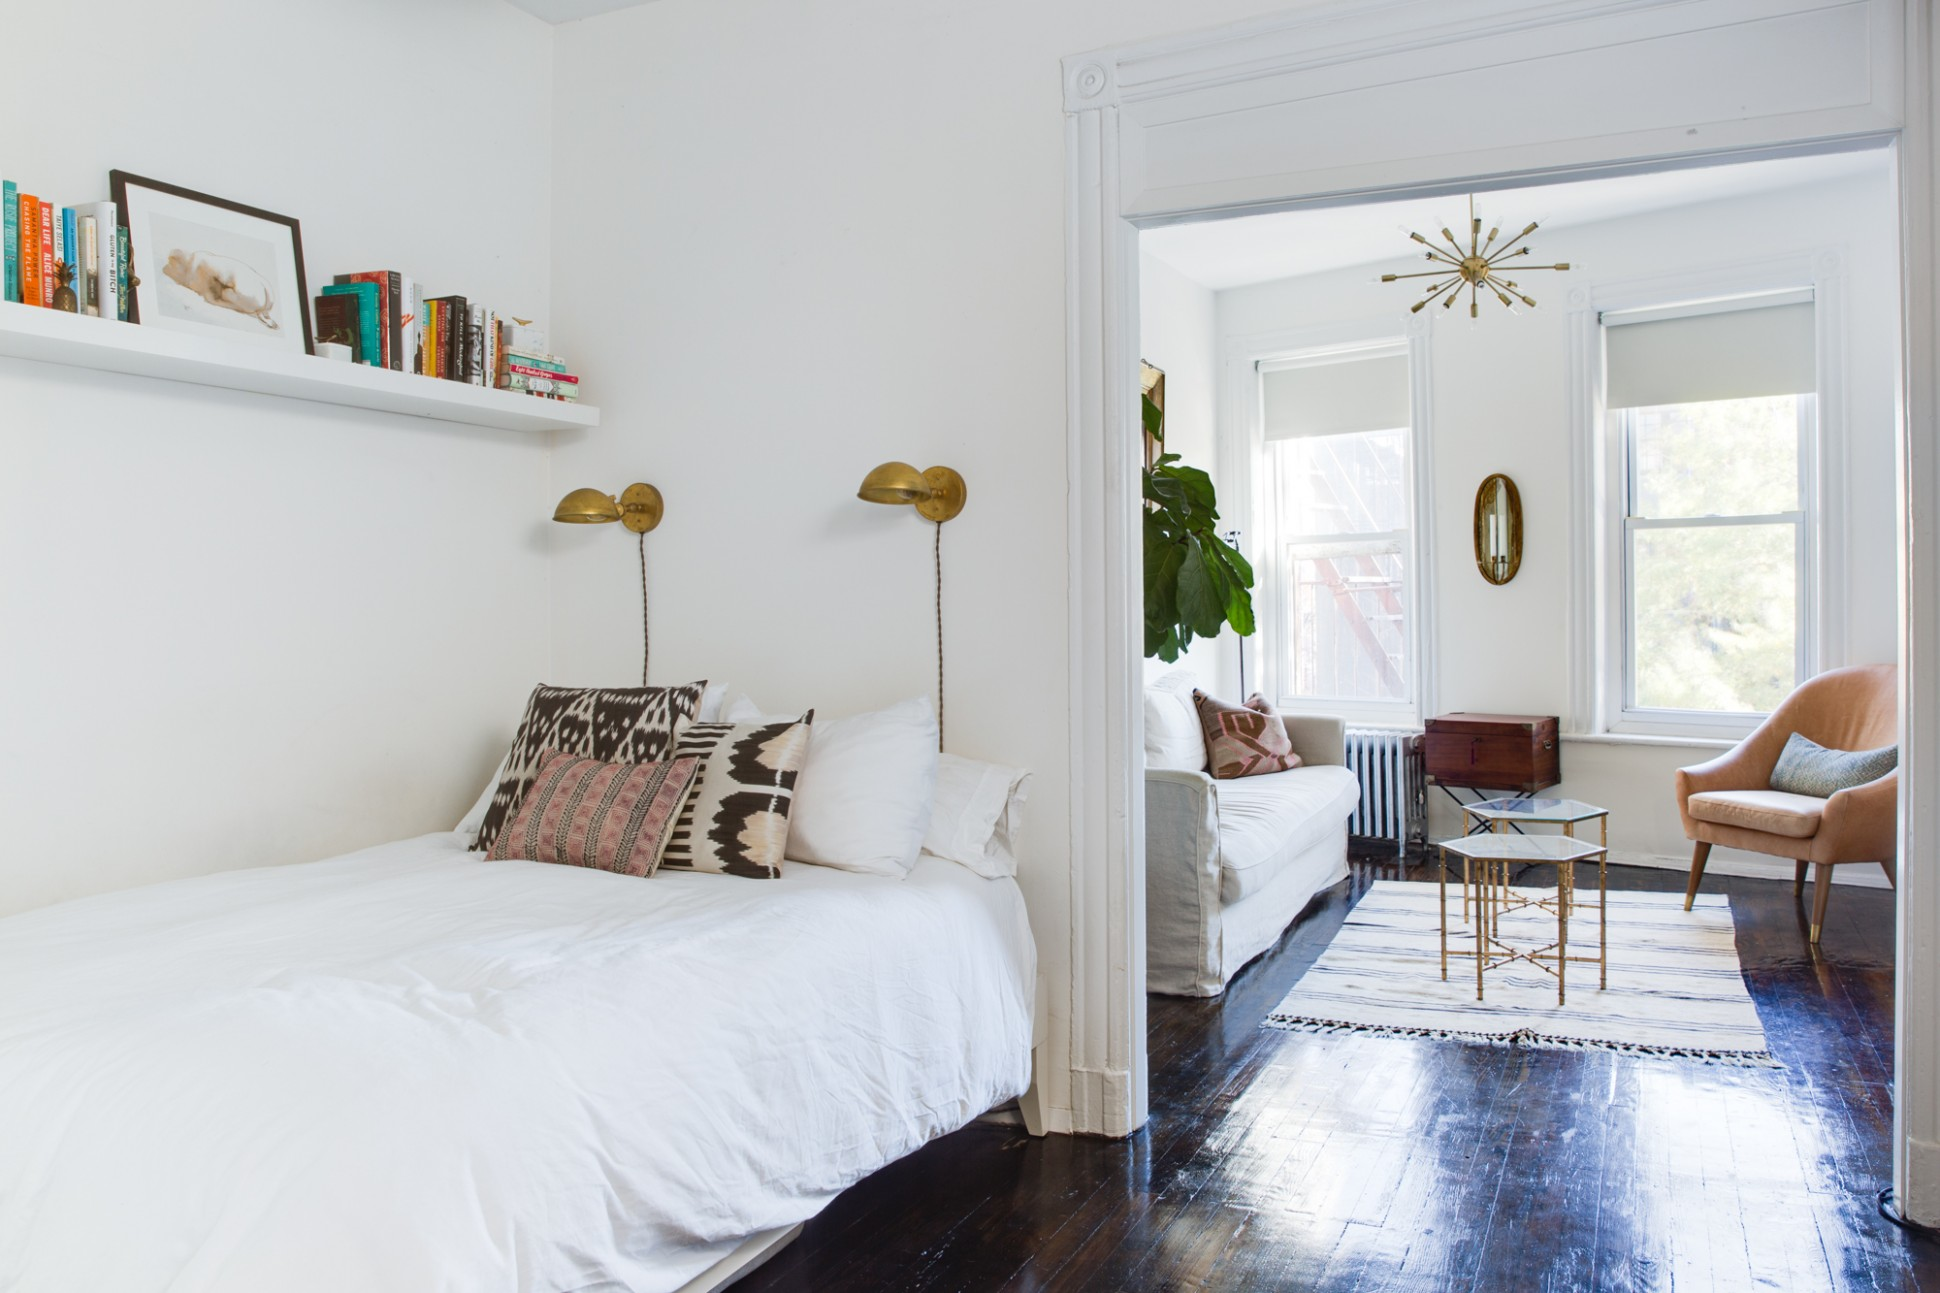 9 Small Bedroom Ideas - How to Decorate a Small Bedroom  - Bedroom Ideas Small Room